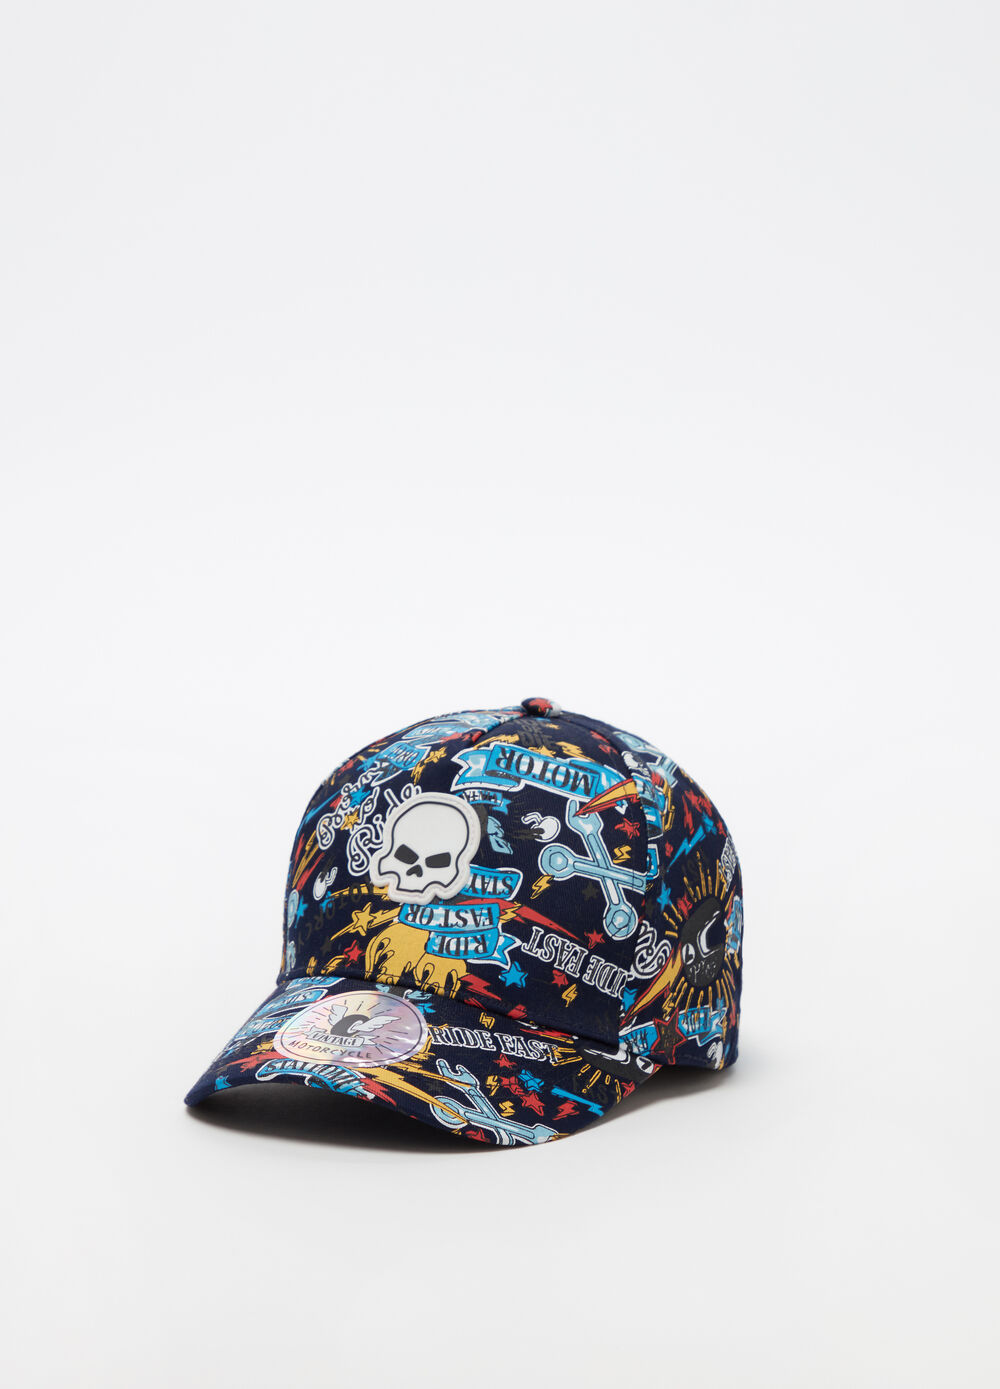 All-over graffiti baseball cap